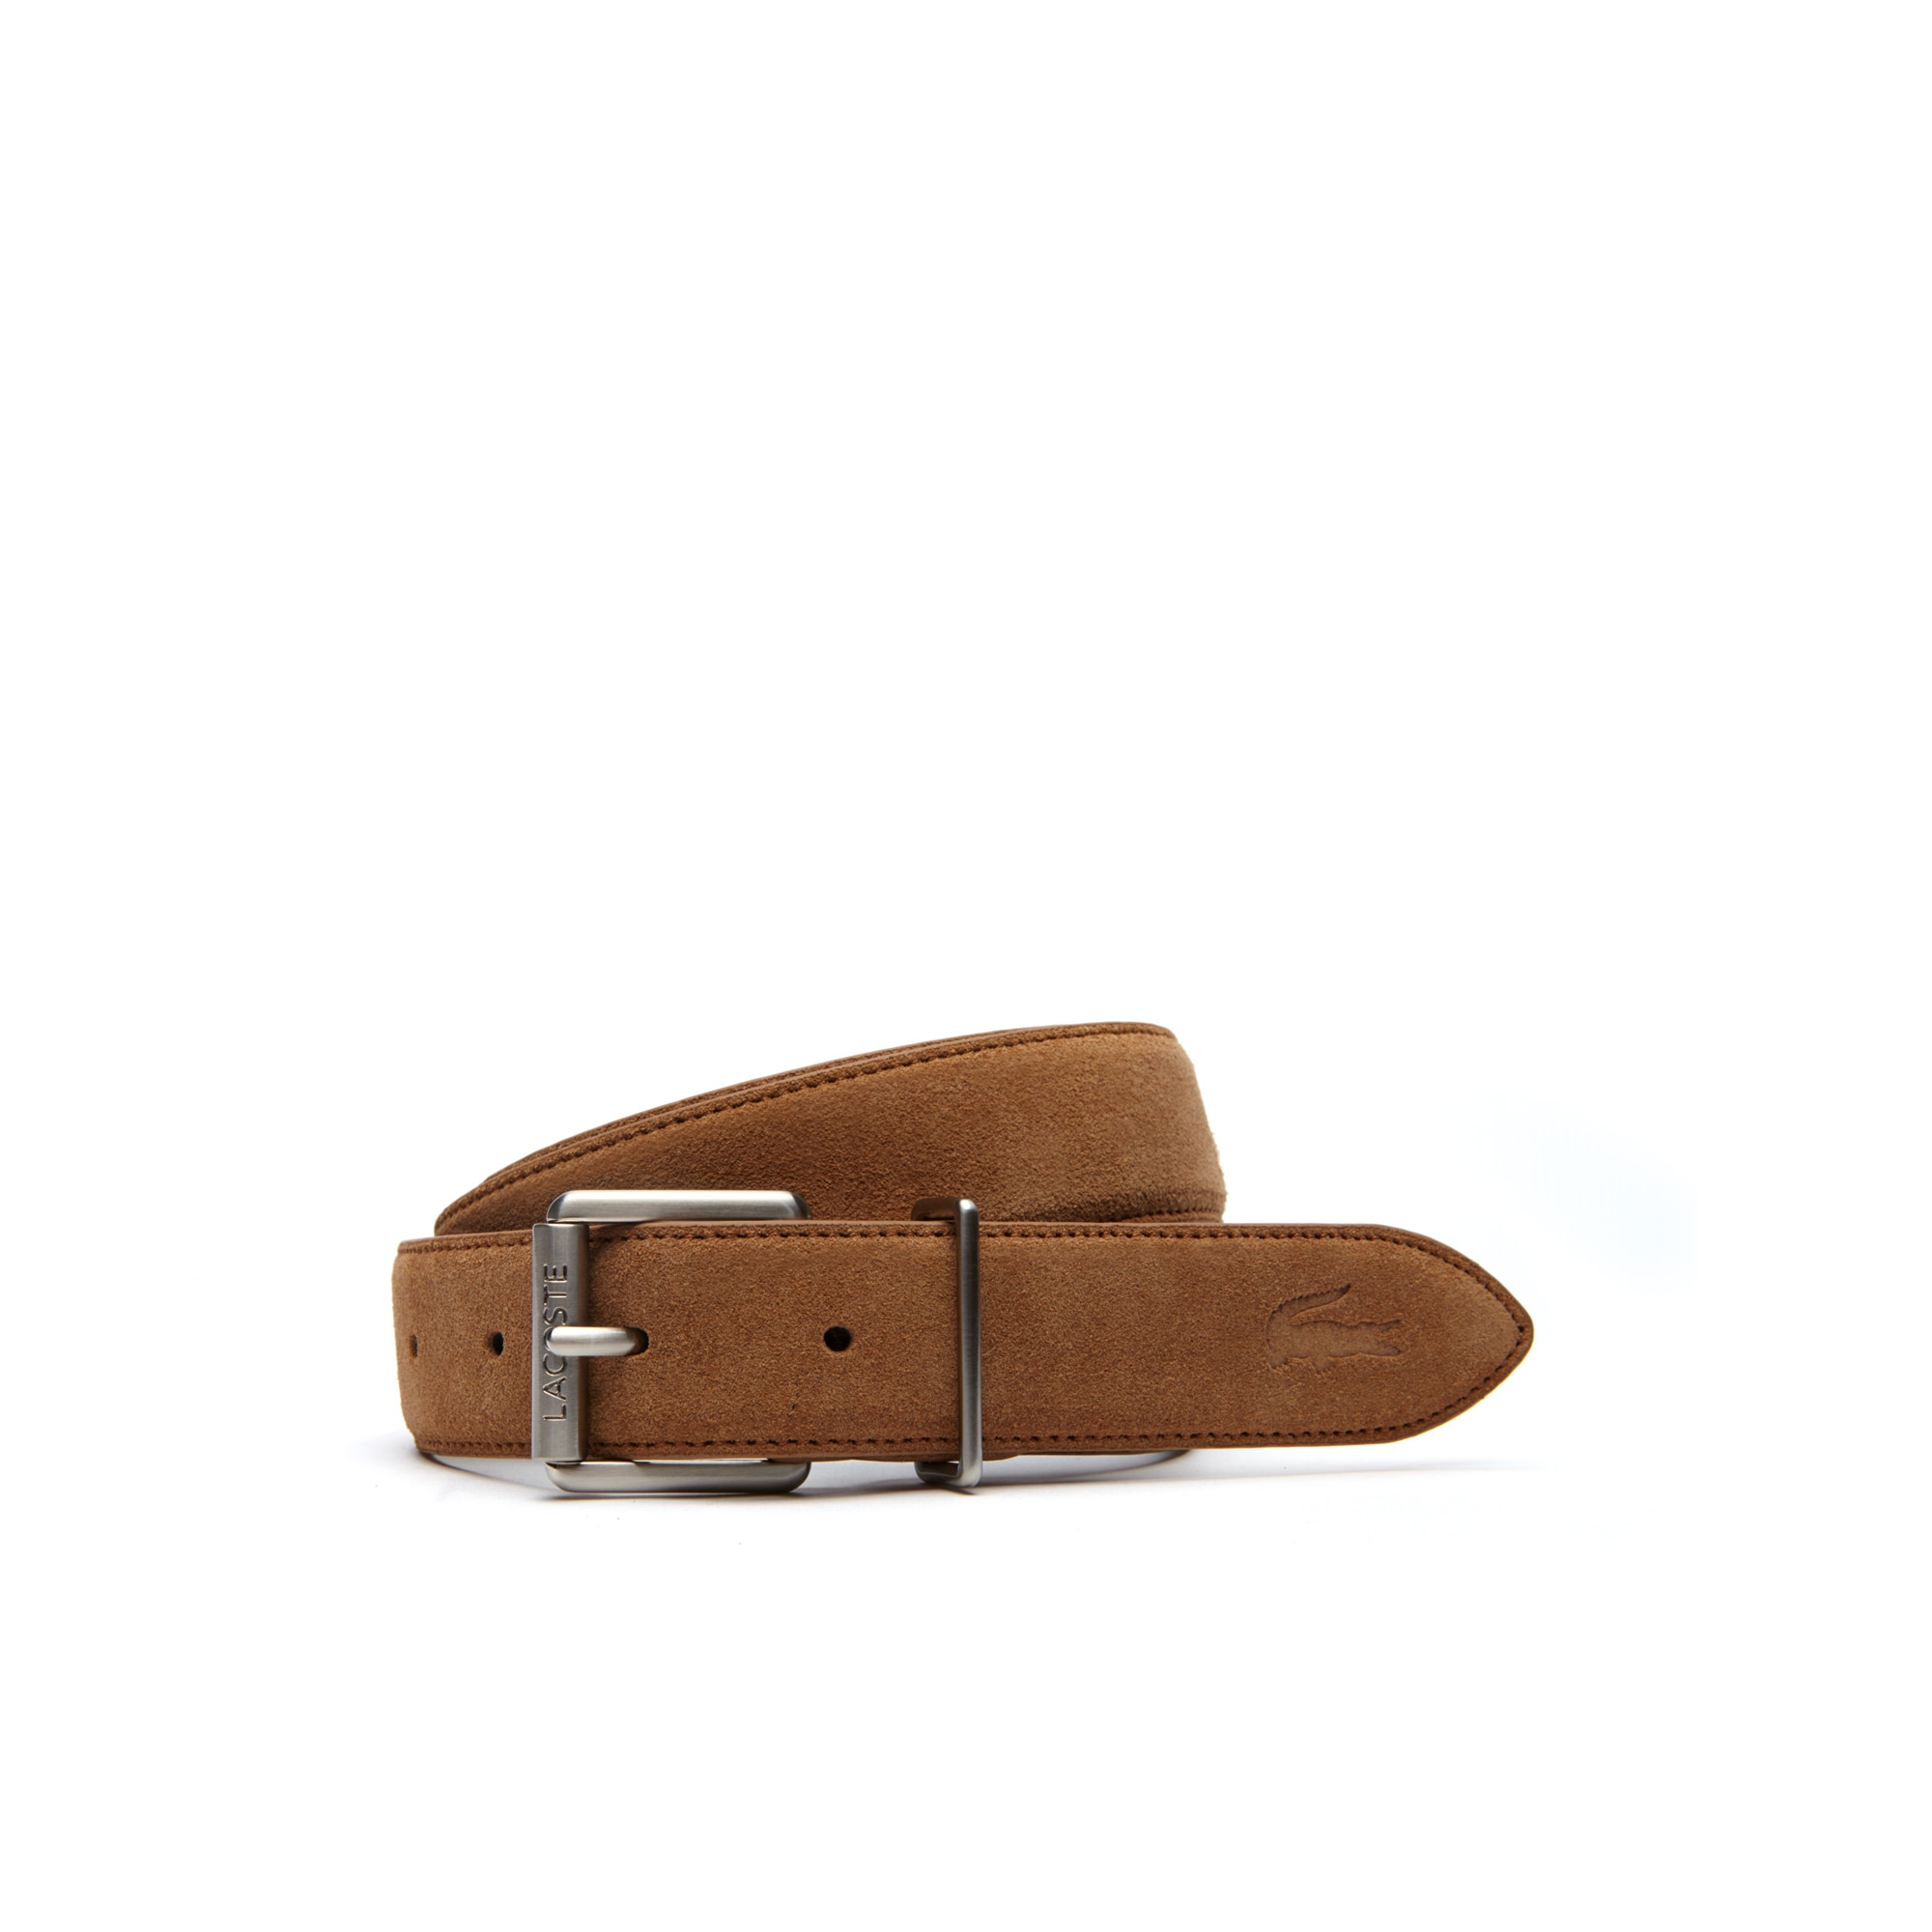 라코스테 Lacoste Mens Tongue Buckle Suede-Style Leather Belt,camel